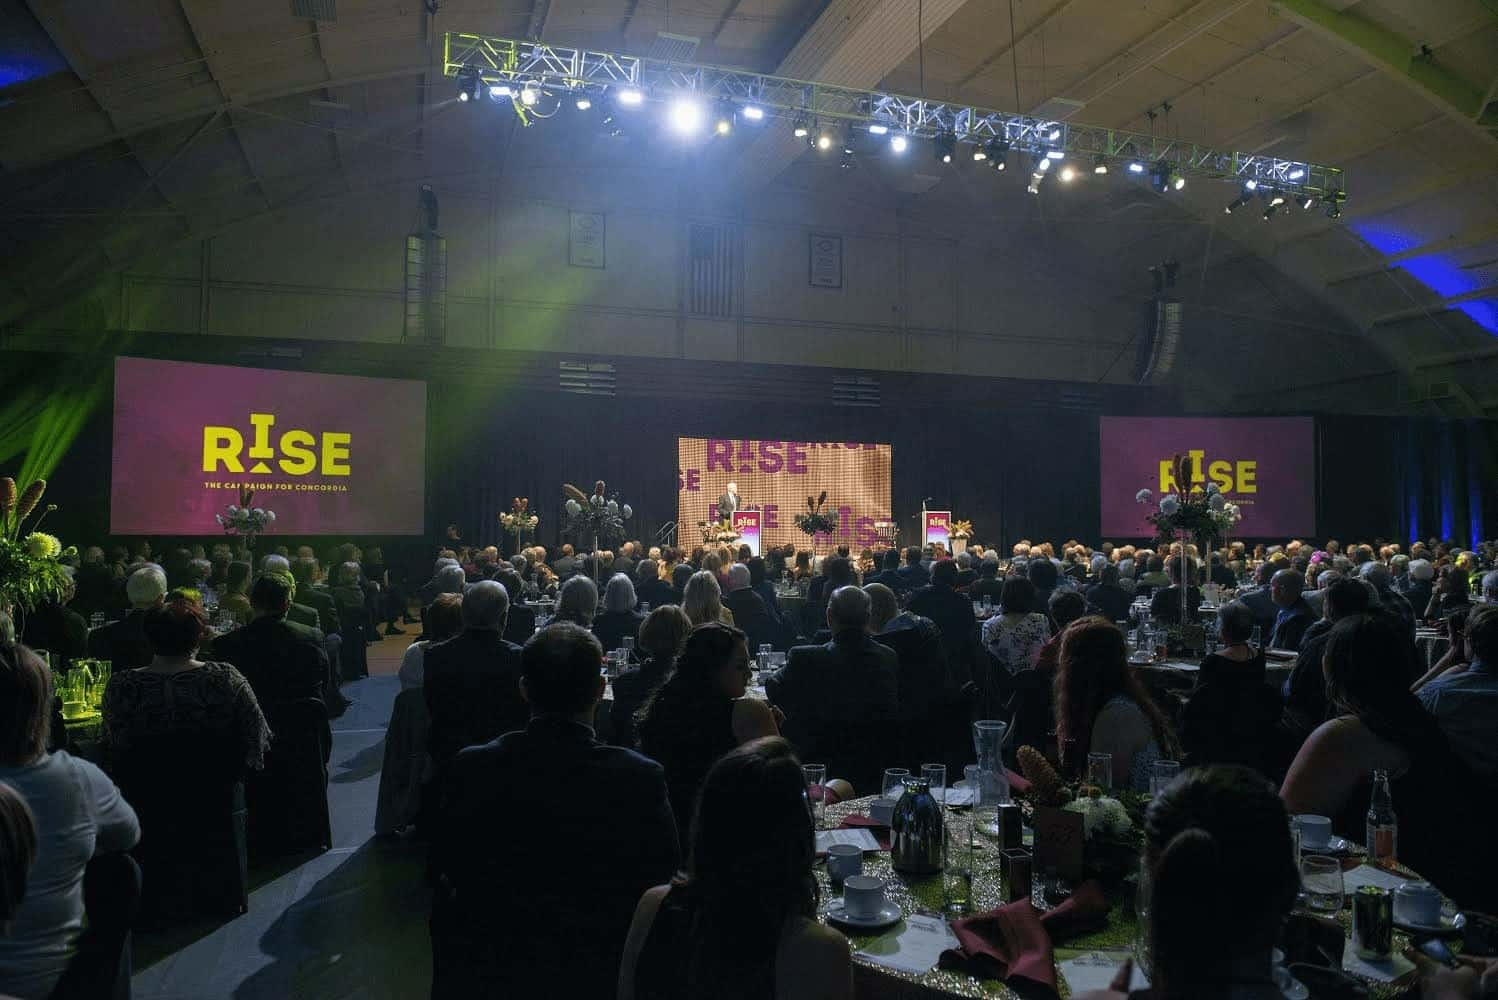 Photo from RISE gala event. Courtesy of Concordia College.